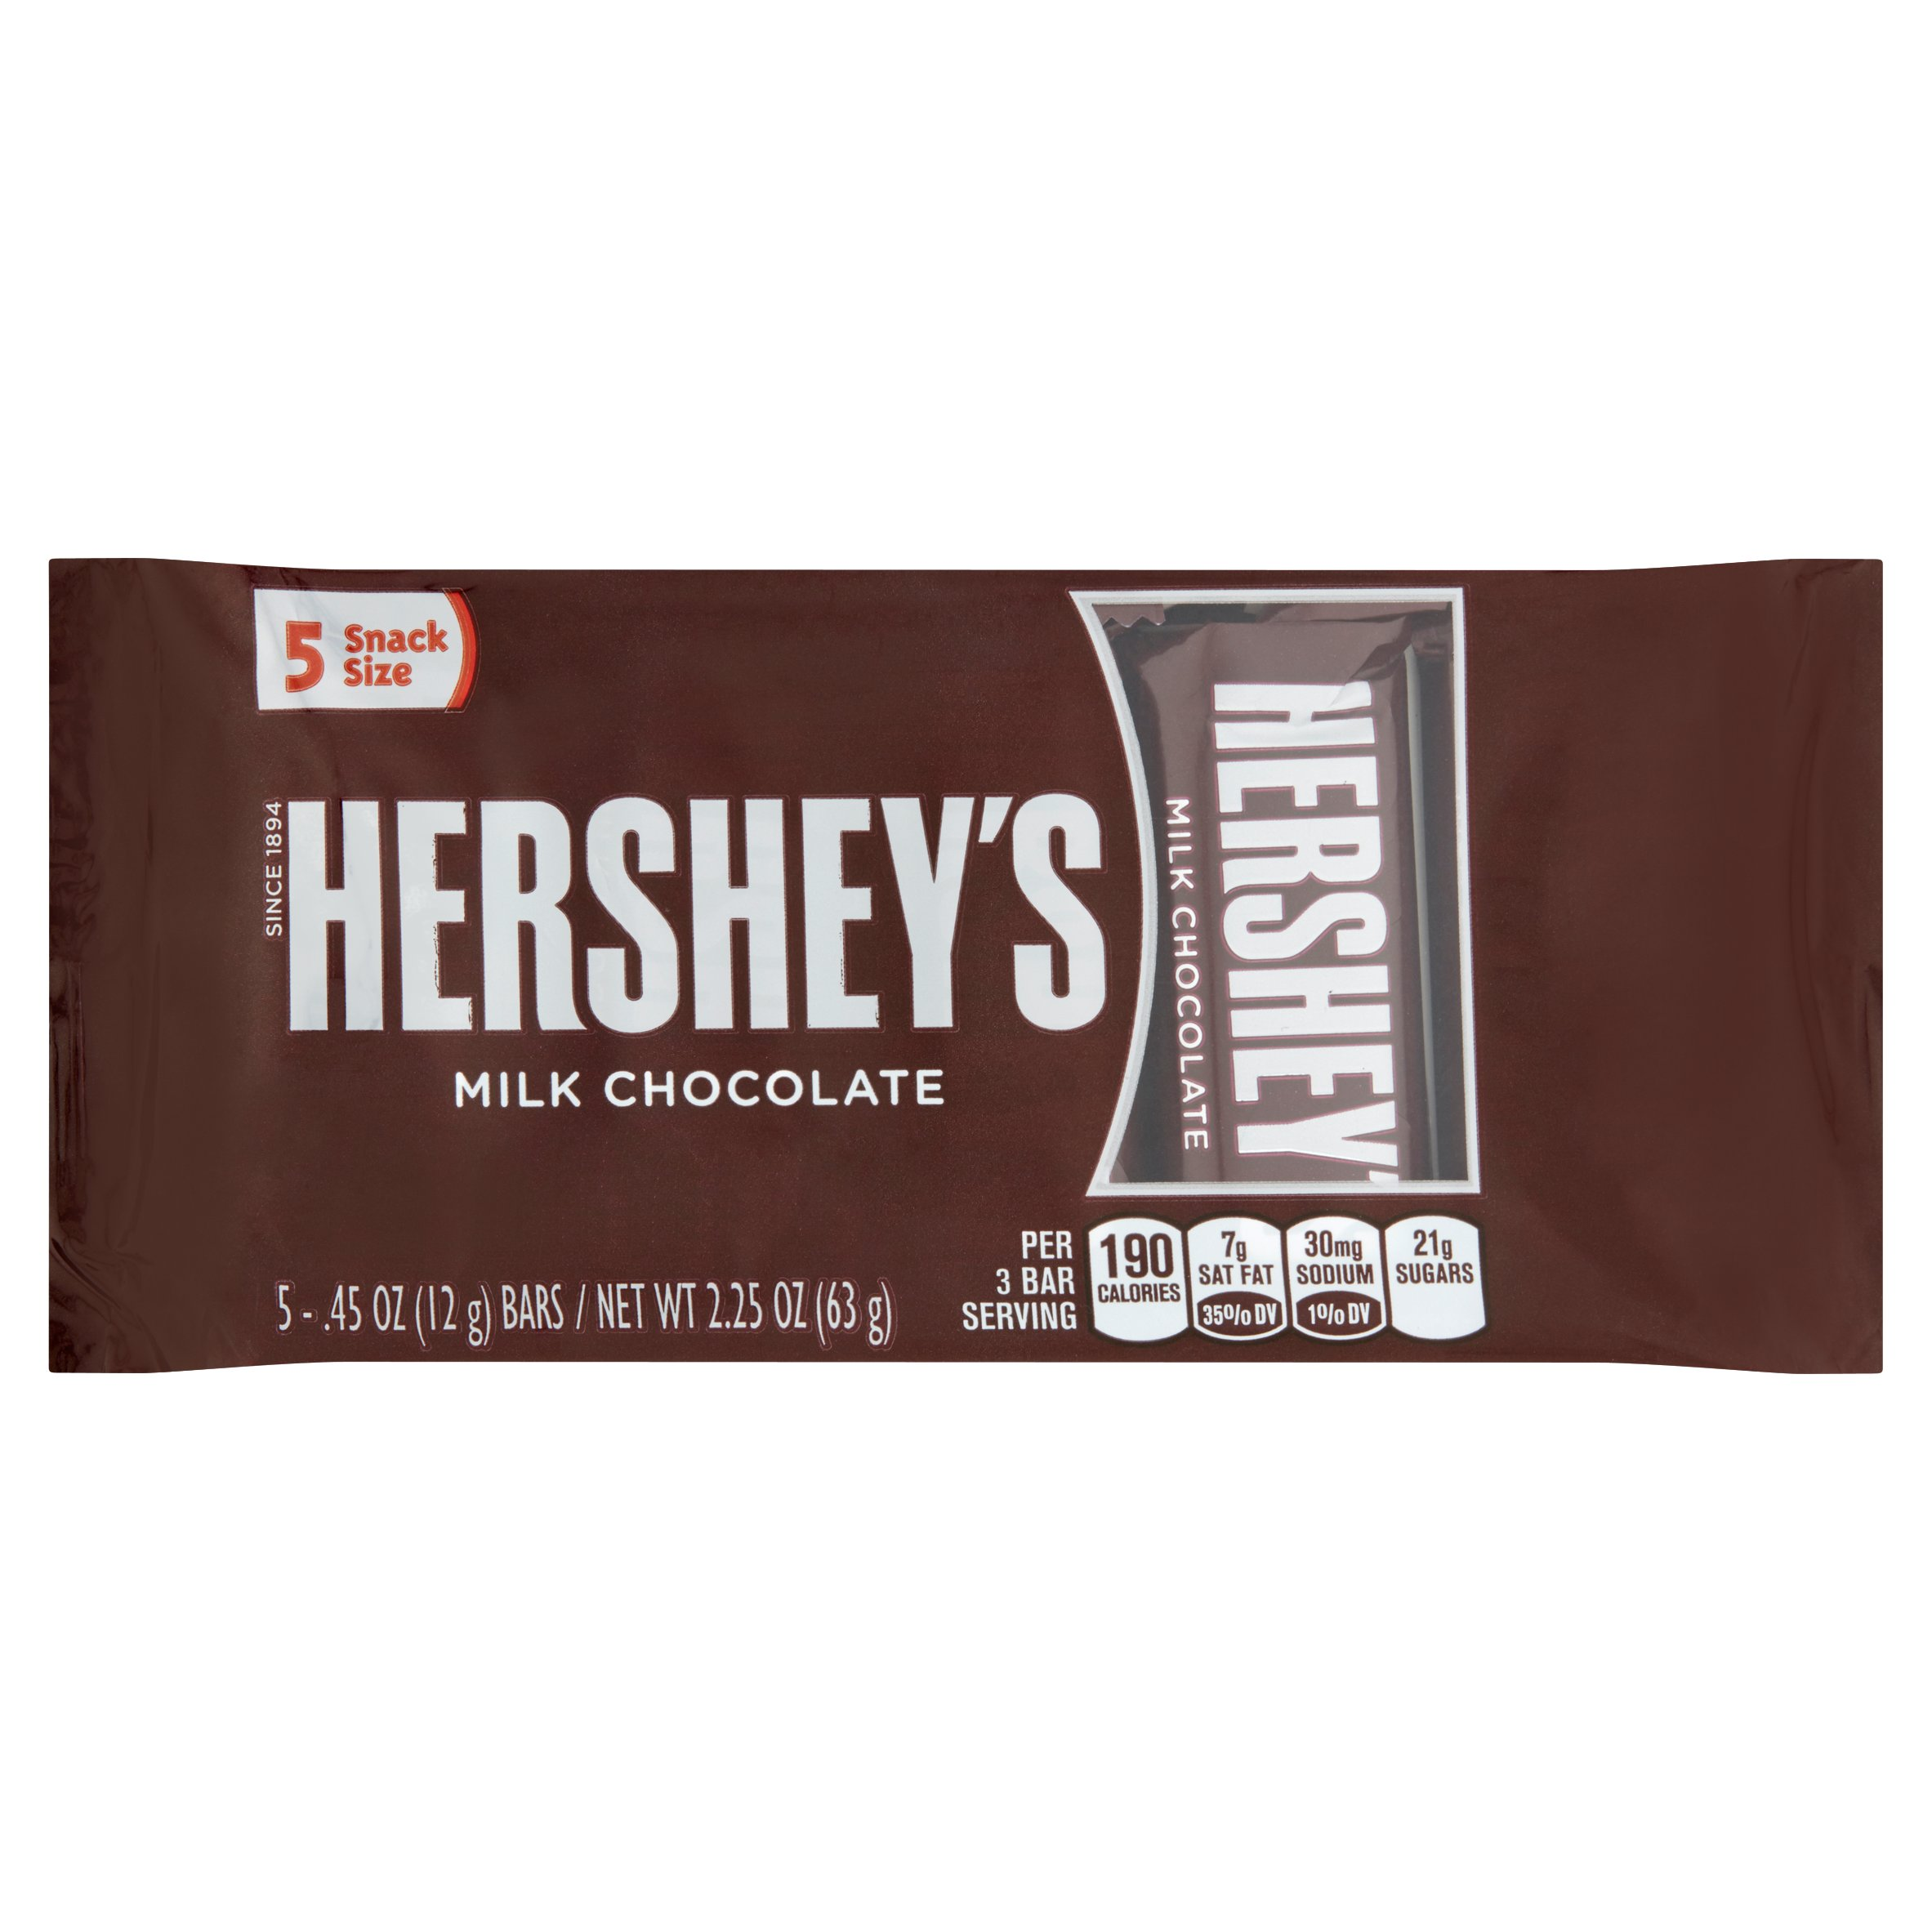 Hershey's Milk Chocolate Bars Snack Size, .45 oz, 5 count by The Hershey Company